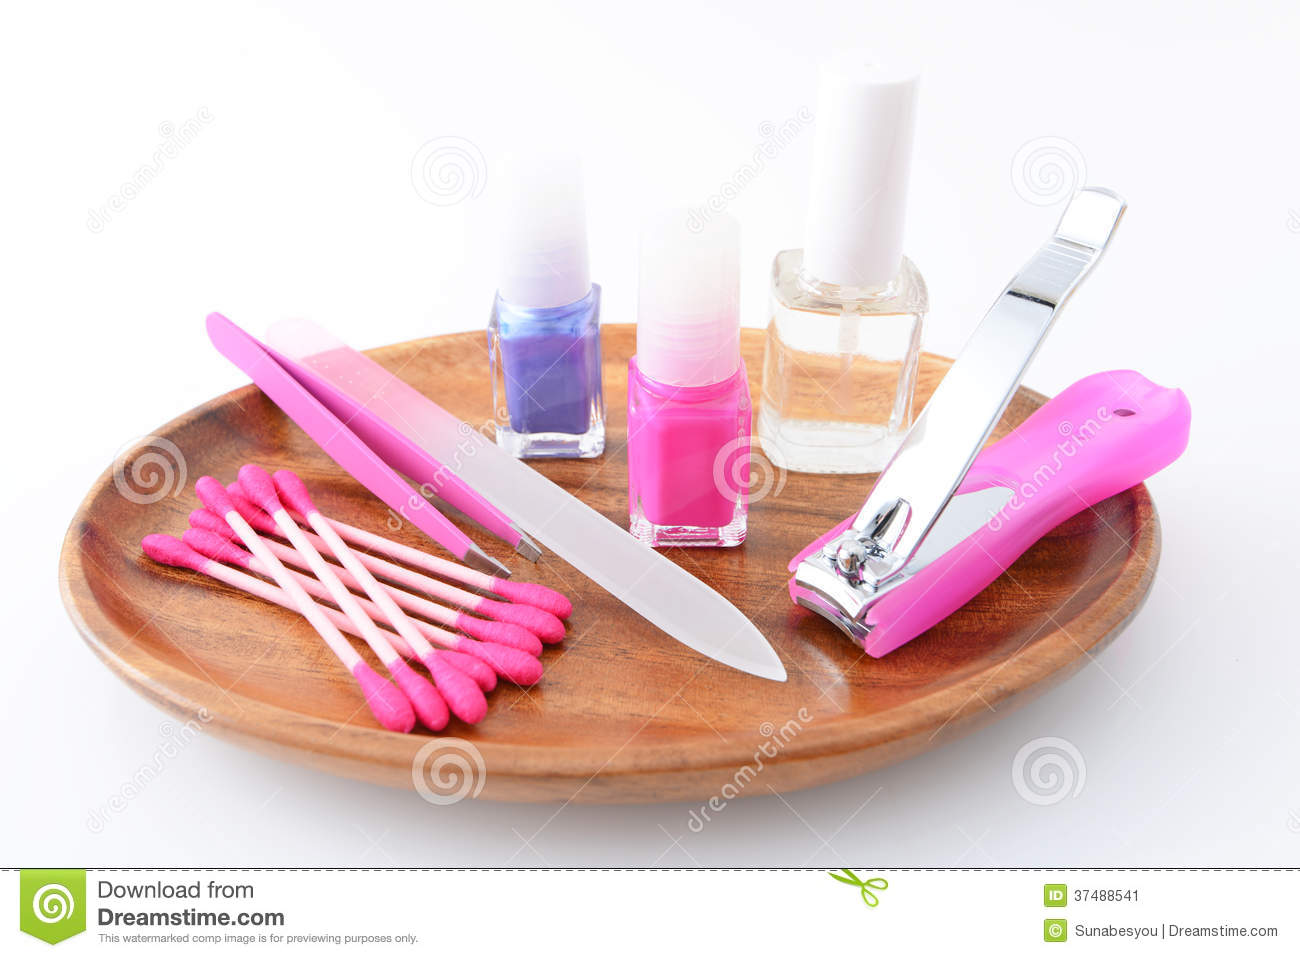 nail-care-tools-tool-beauty-body-37488541.jpg